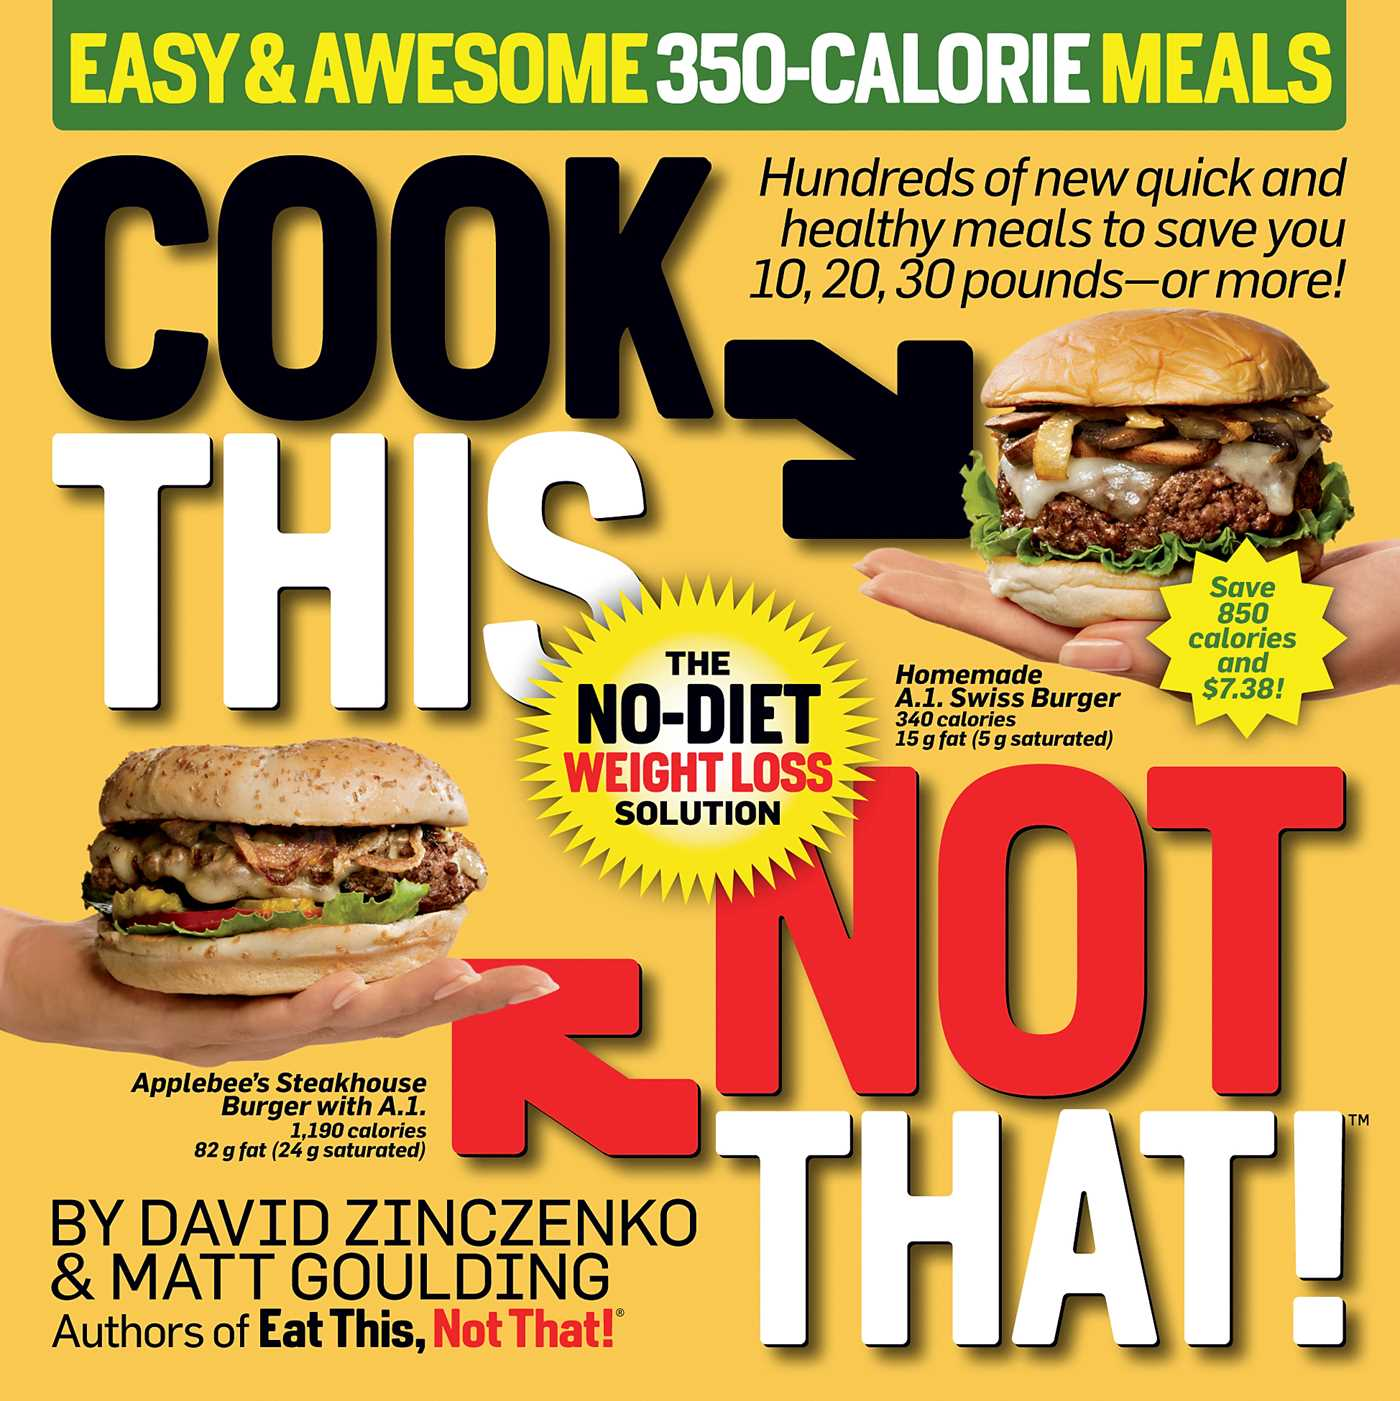 Cook this not that easy awesome 350 calorie meals 9781101884430 hr